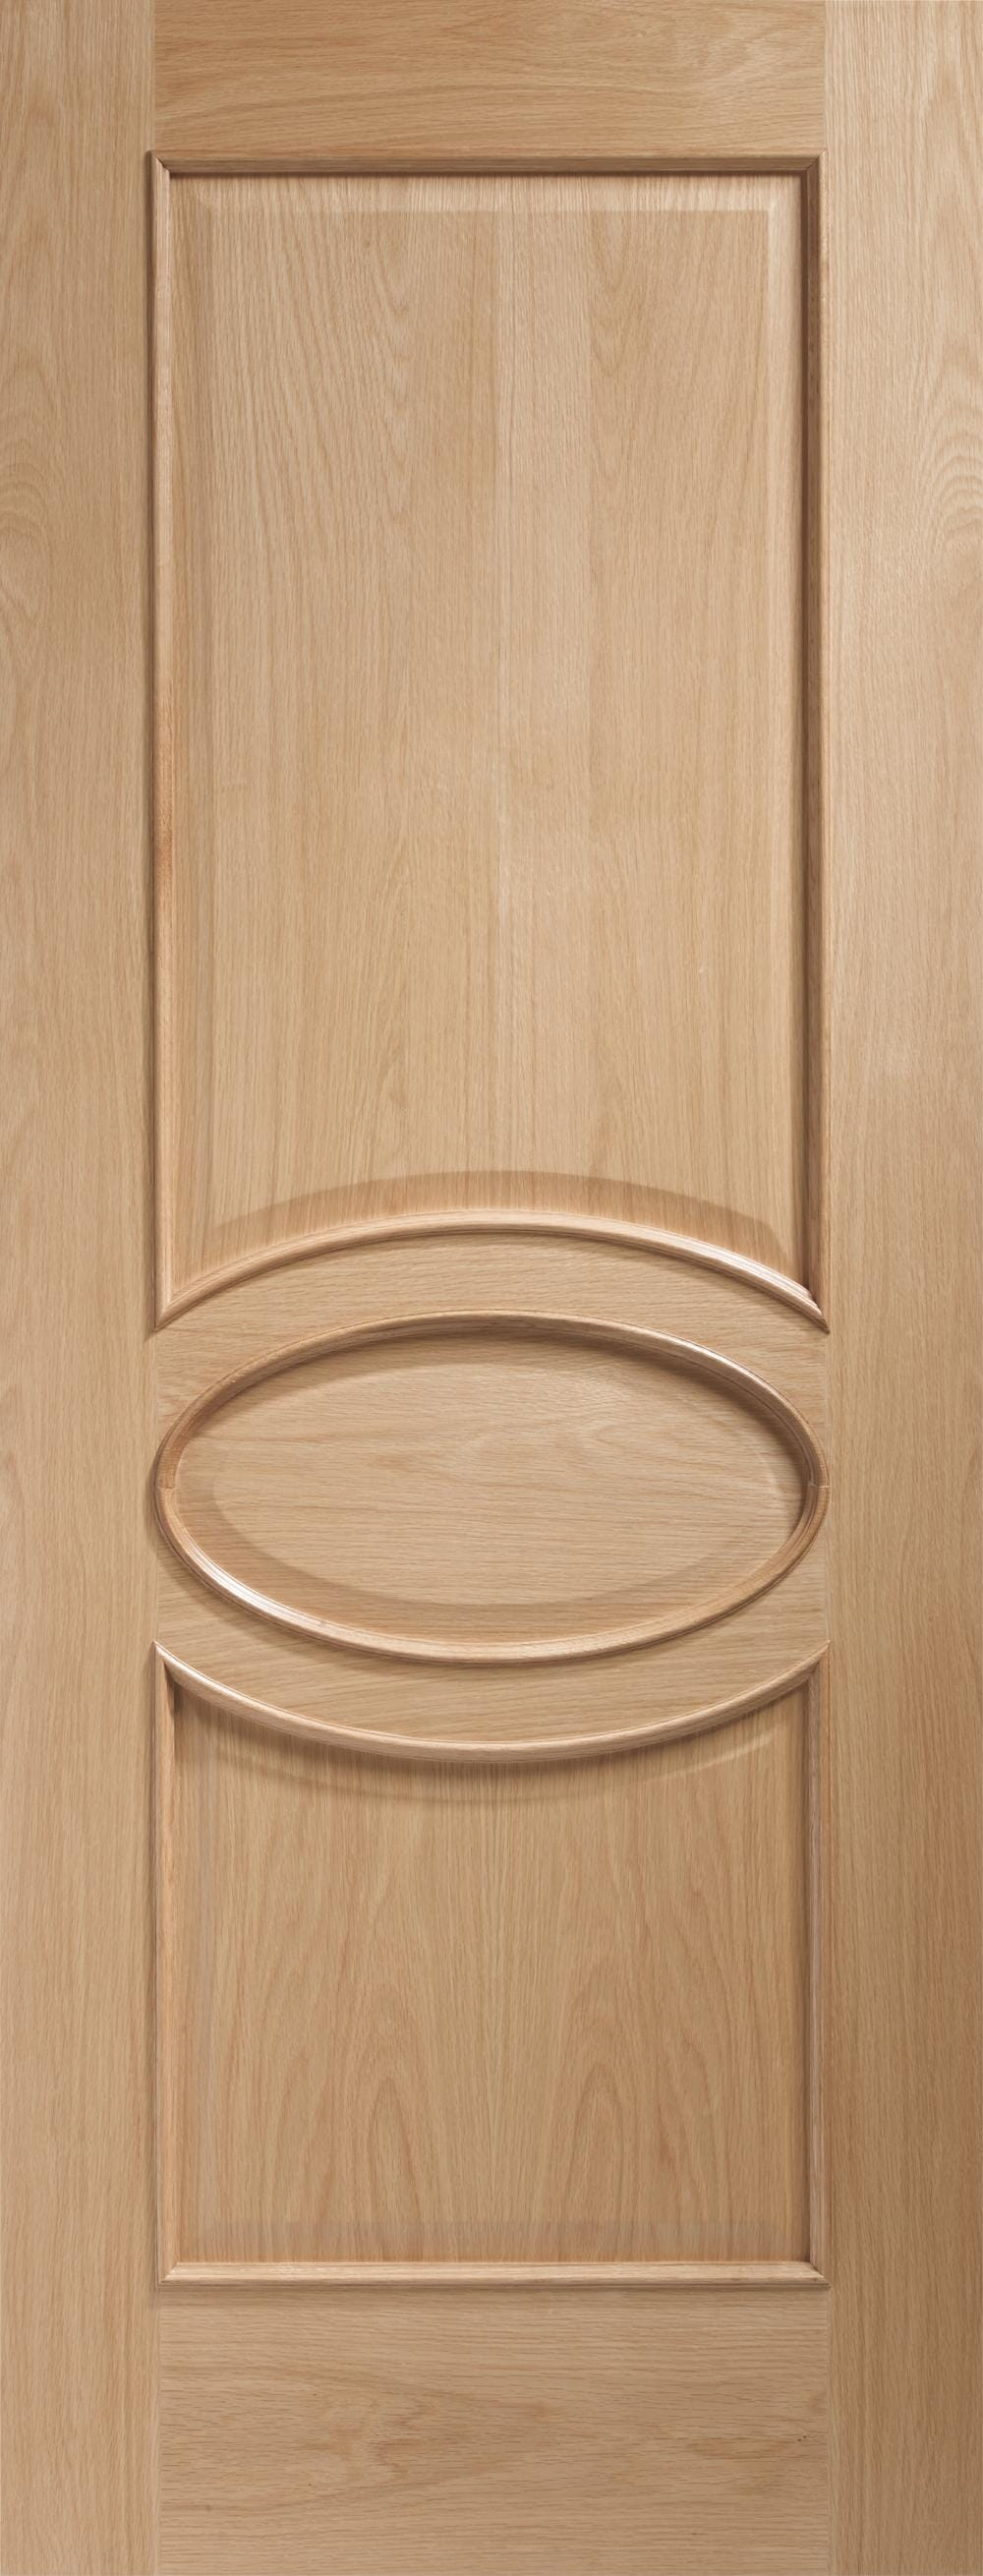 Calabria Oak Rm2s - Xl Joinery Image